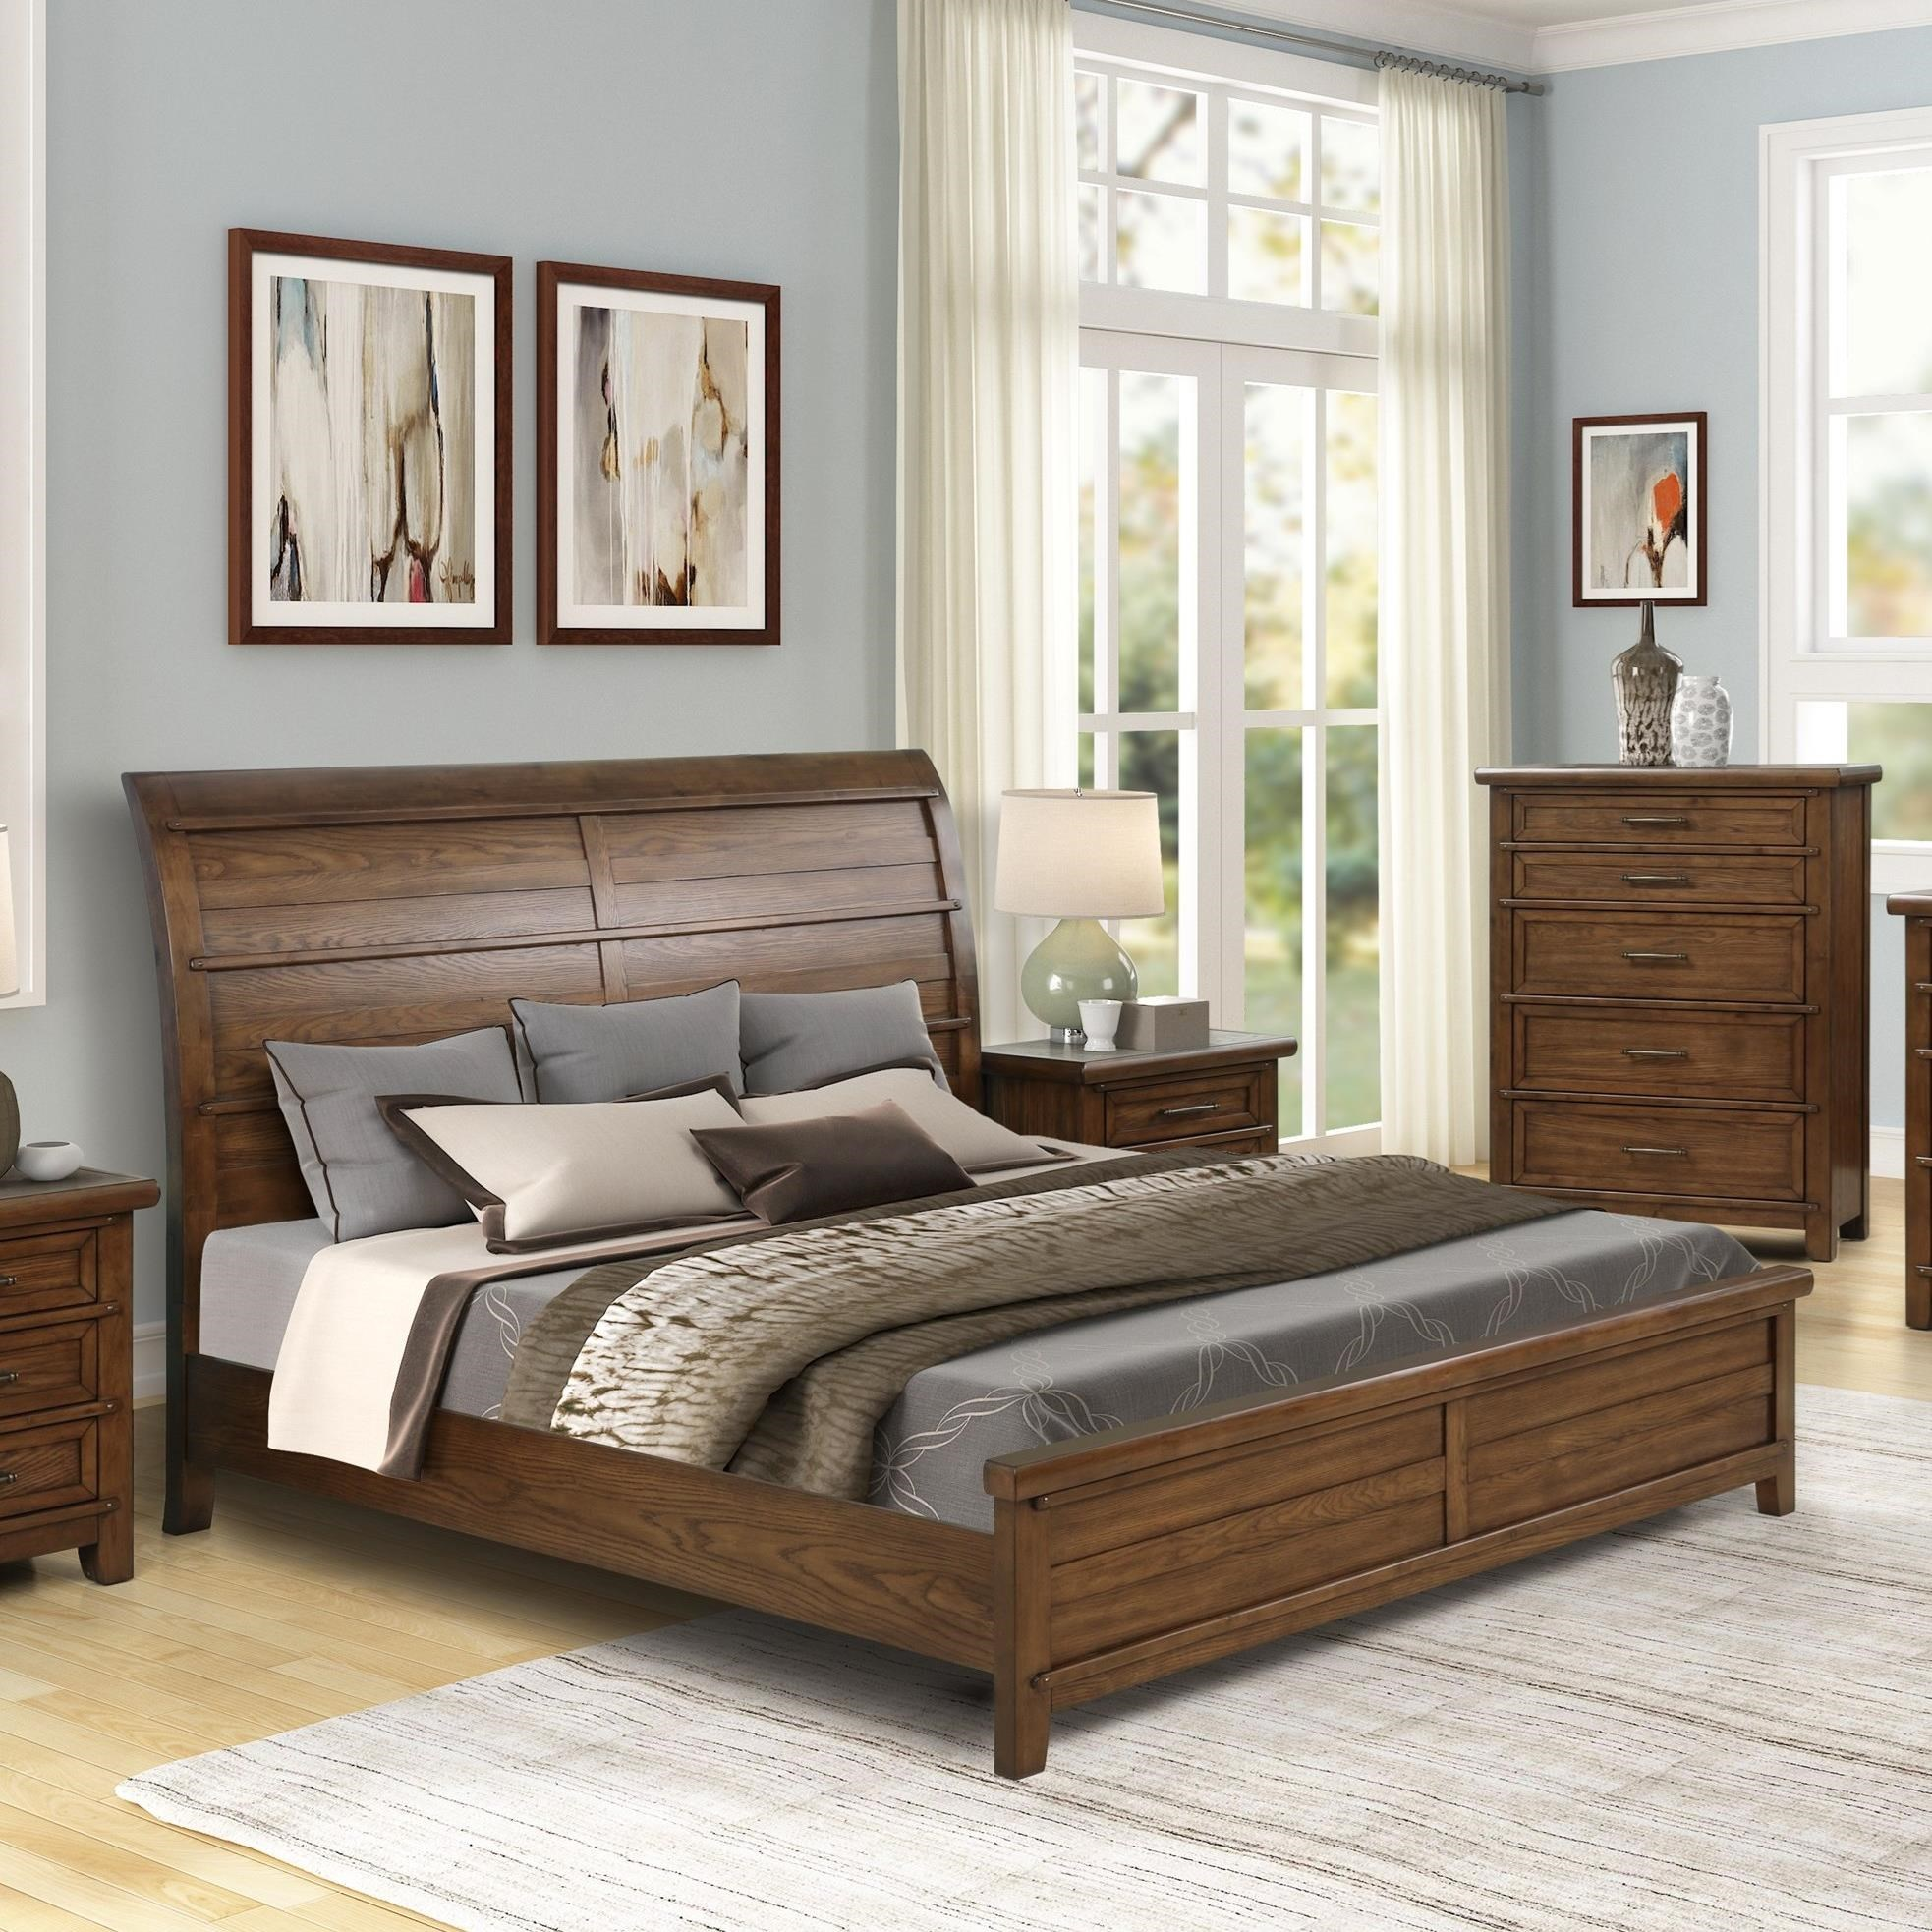 Fairfax County Queen Sleigh Bed by New Classic at Beds N Stuff